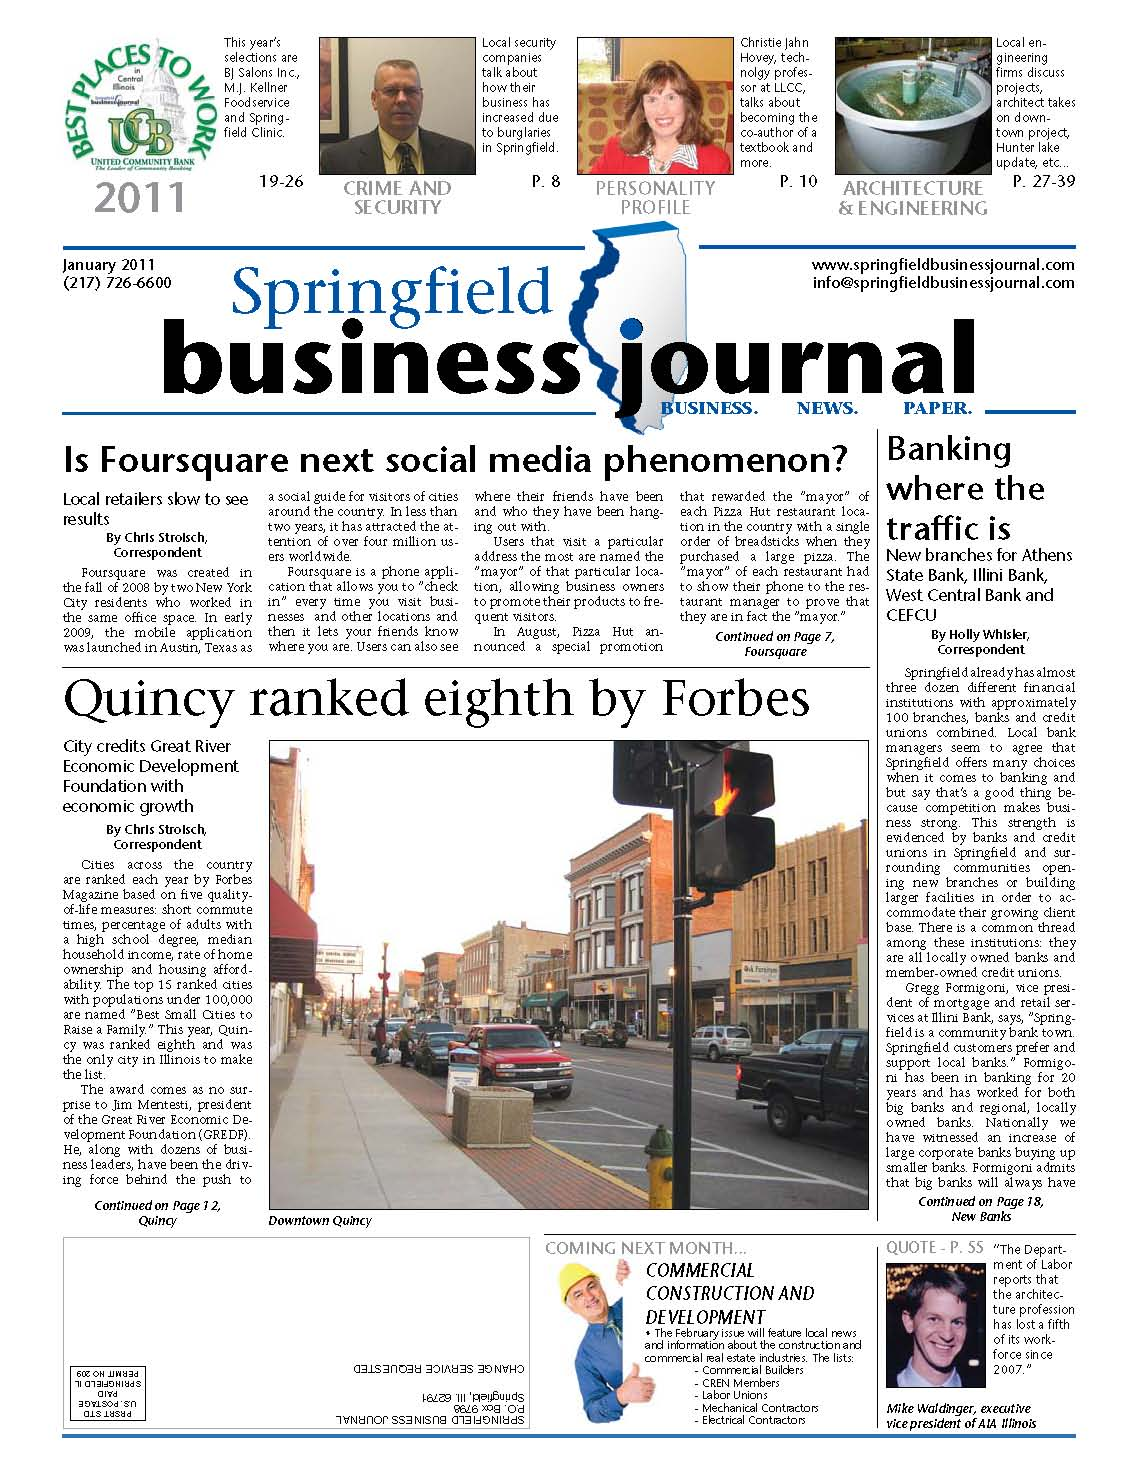 Springfield Business Journal Features Quincy